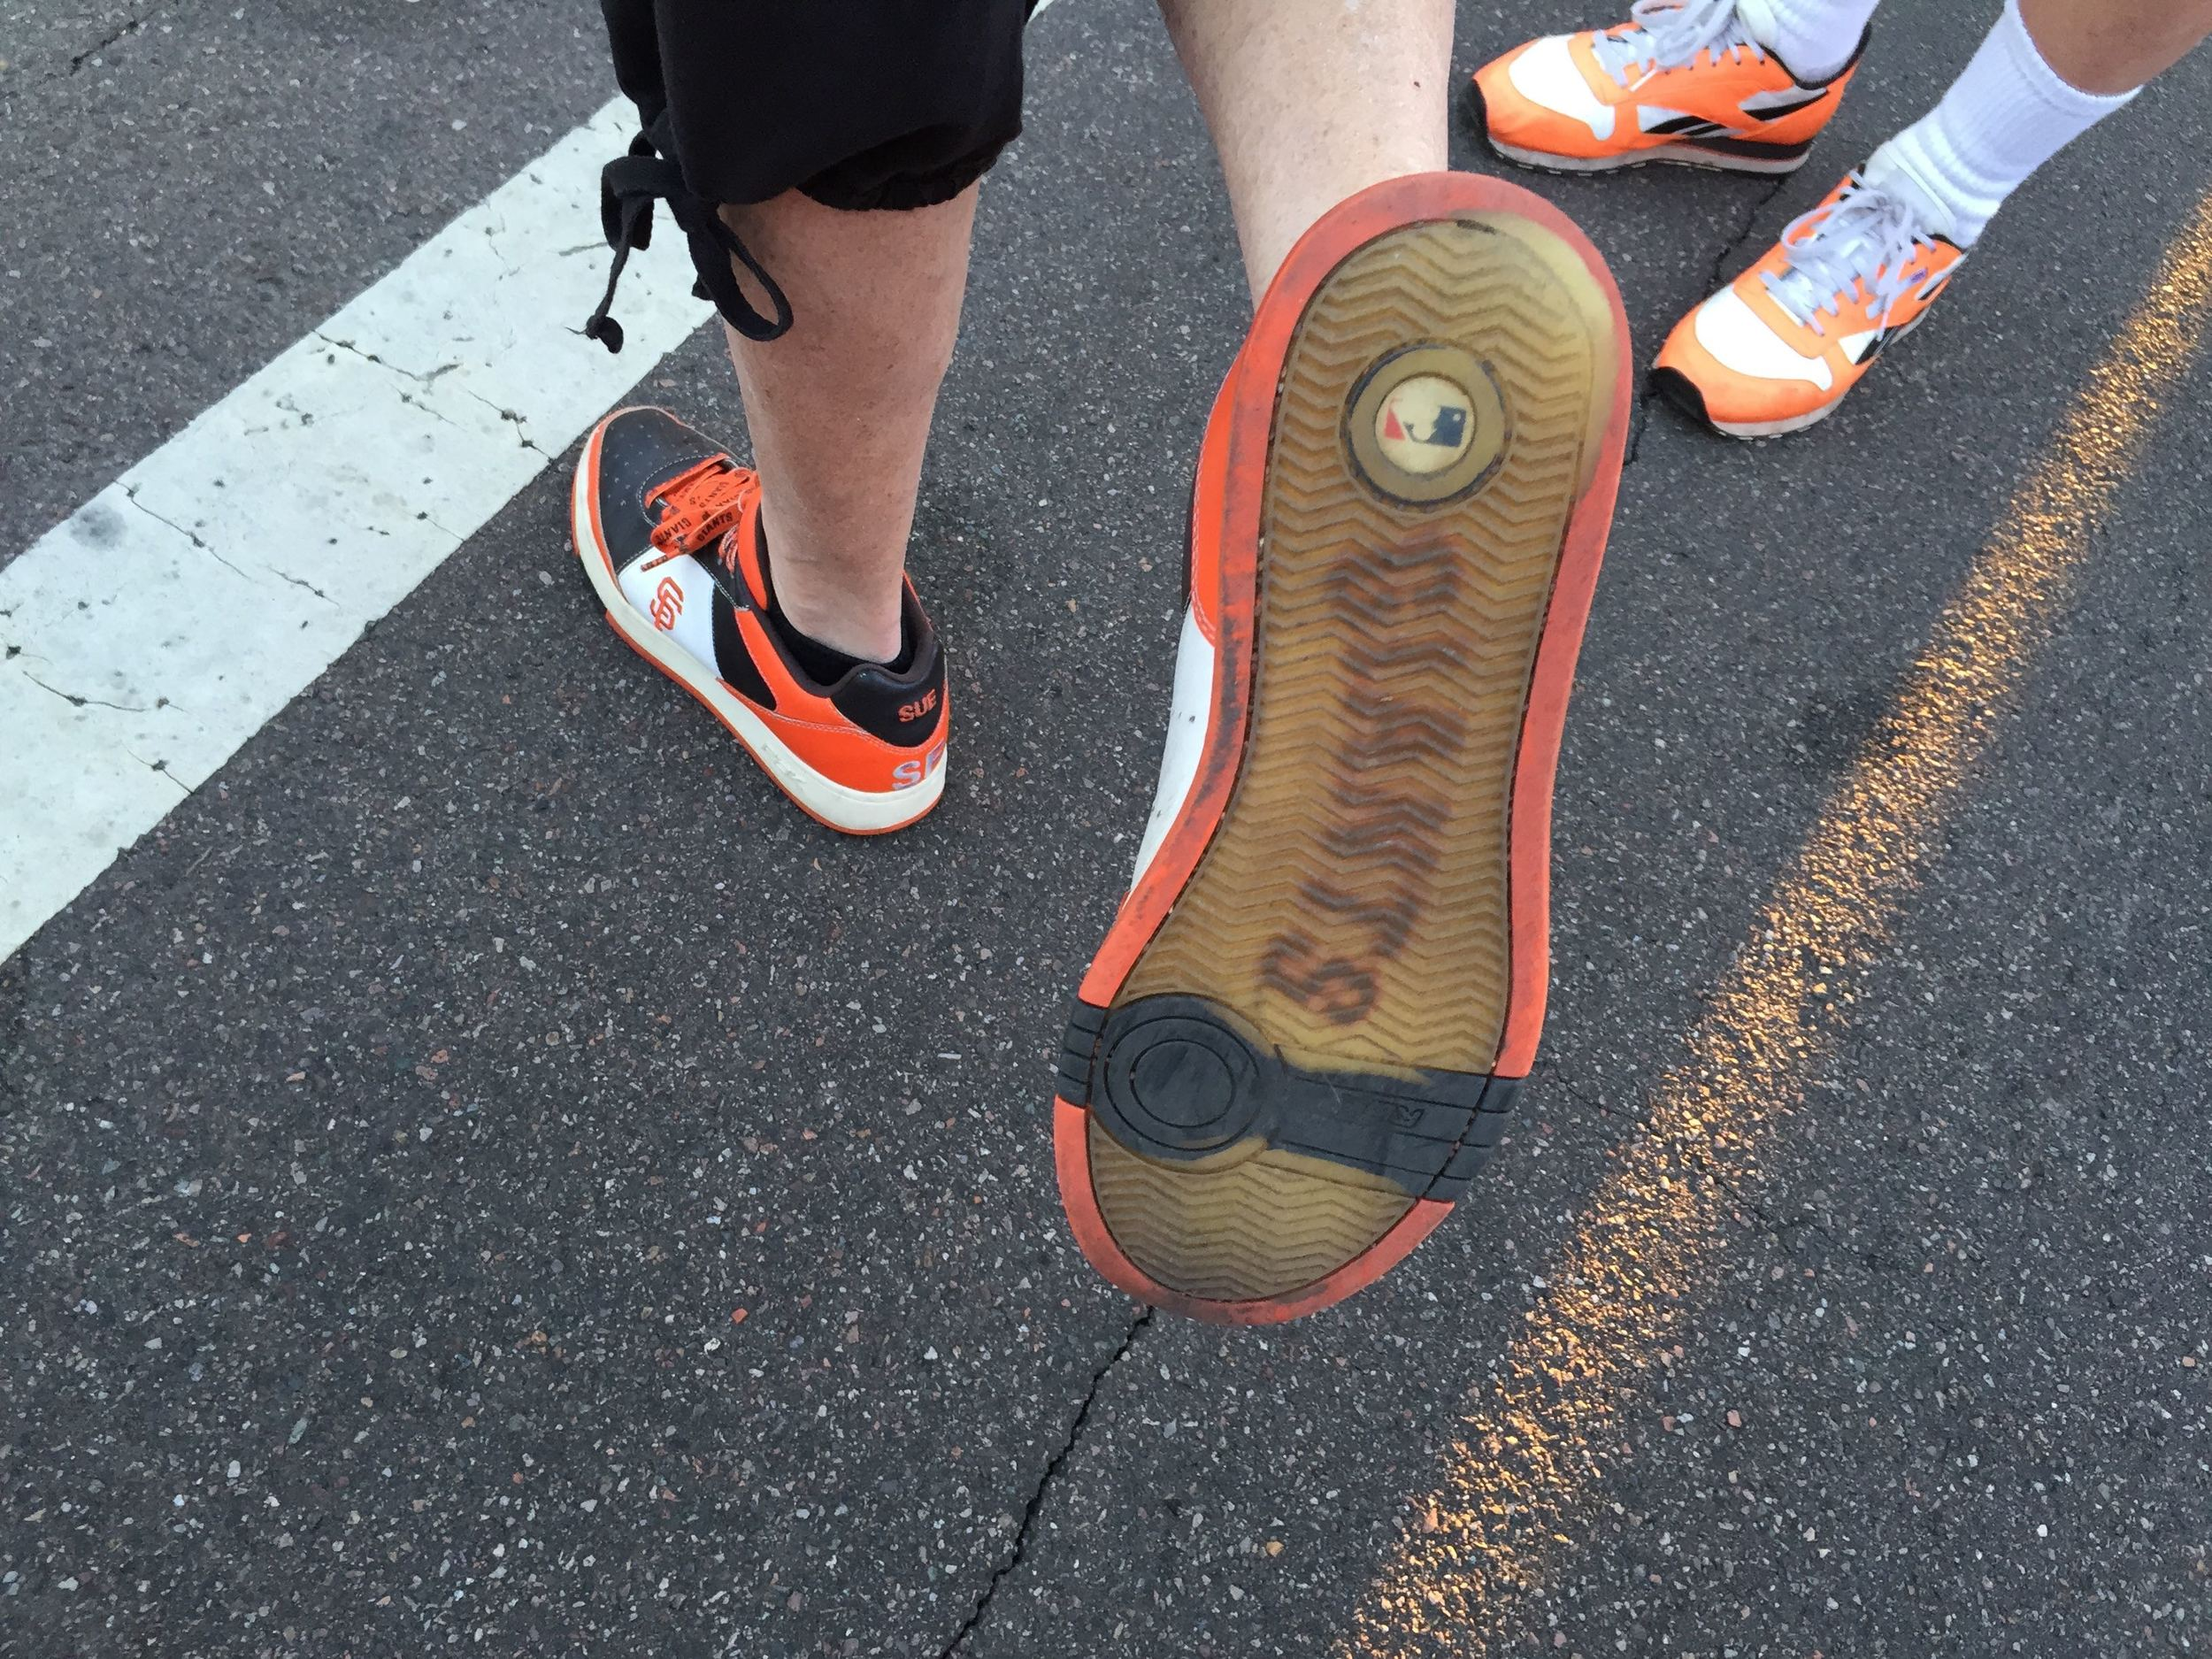 Spring training fans are hardcore. Aren't these the best kicks ever?